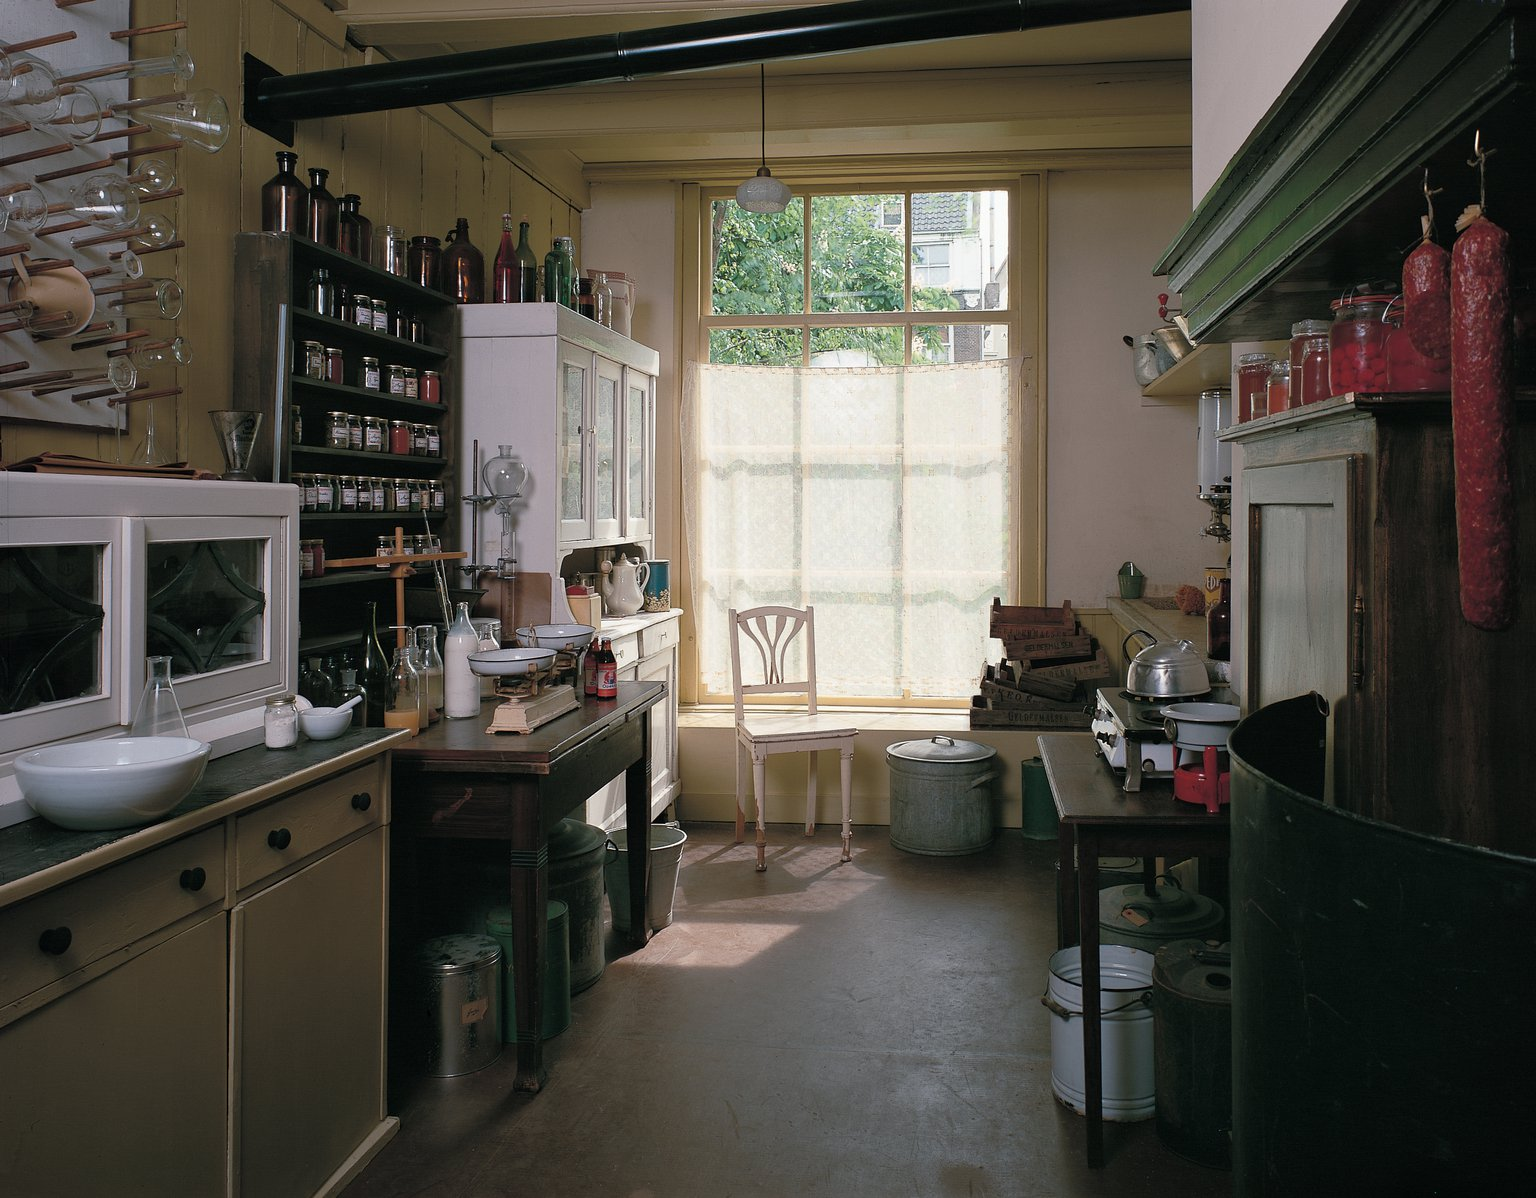 The office kitchen, reconstruction (1999).